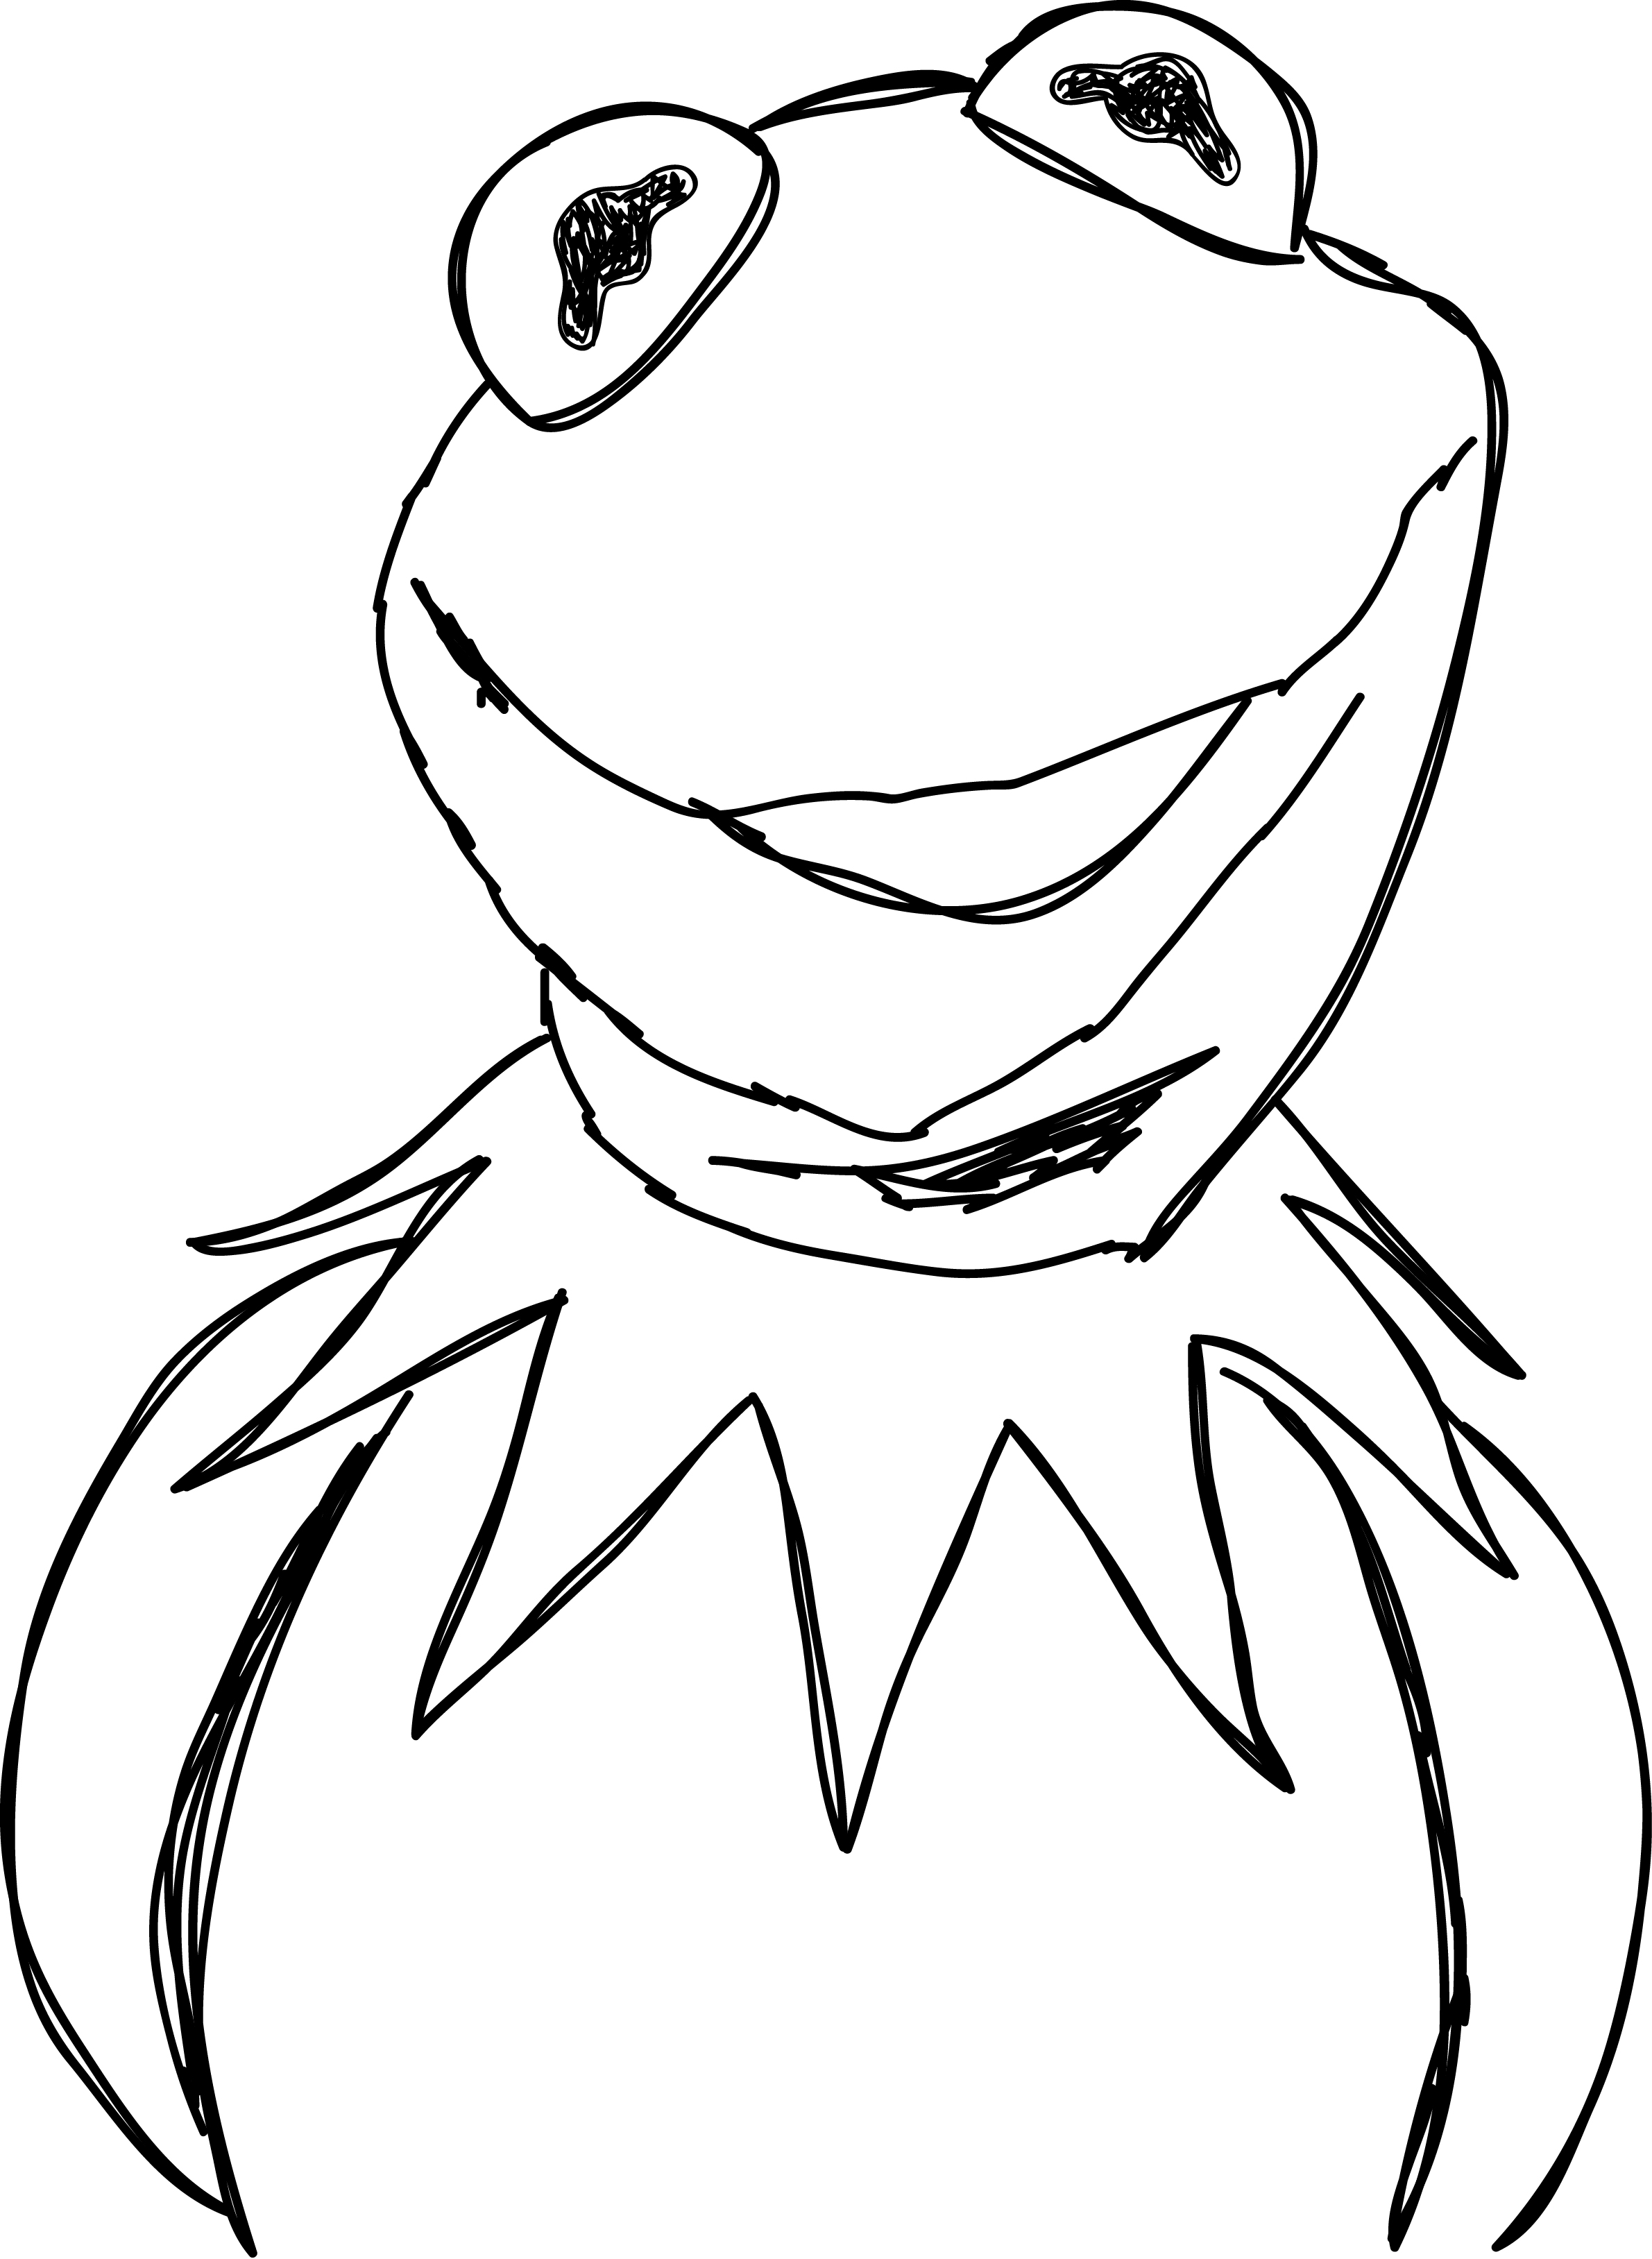 Grover from the muppets clipart black and white vector stock Kermit the Frog Miss Piggy Grover Tree frog The Muppets - frog png ... vector stock